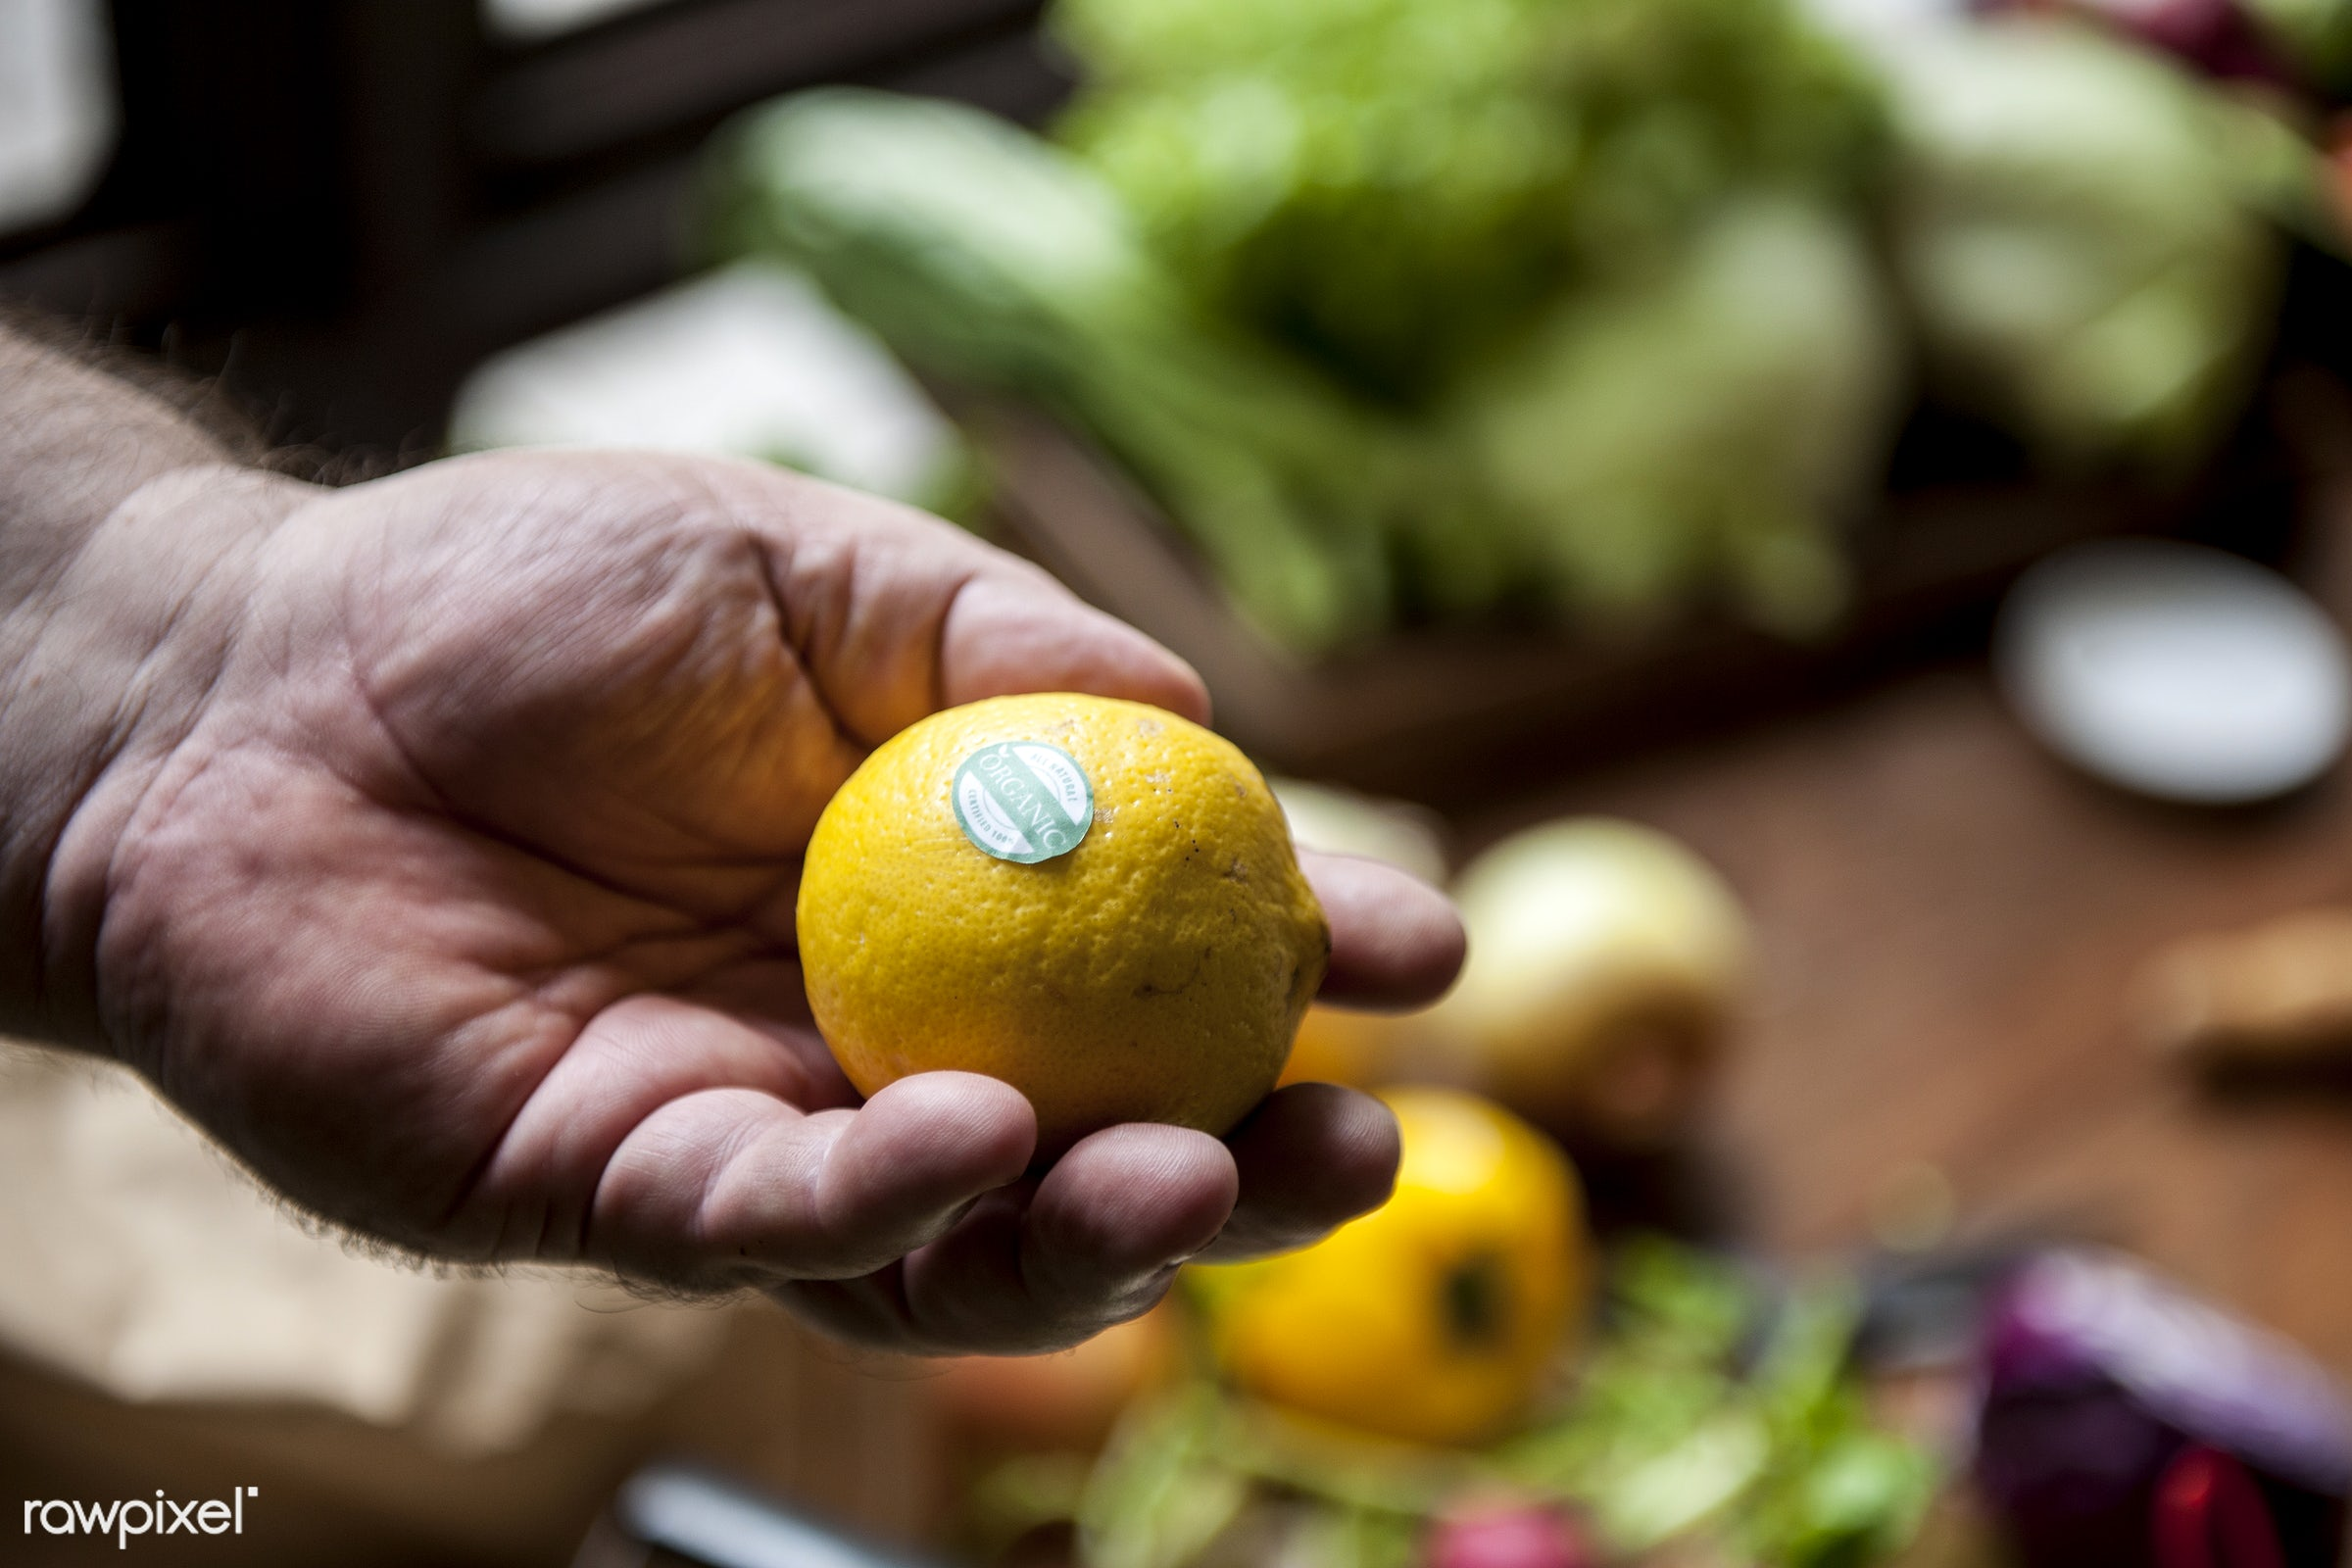 raw, diverse, buy, farm, ingredients, farmer, nature, hands, fresh, choosing, products, closeup, agriculture, variety,...